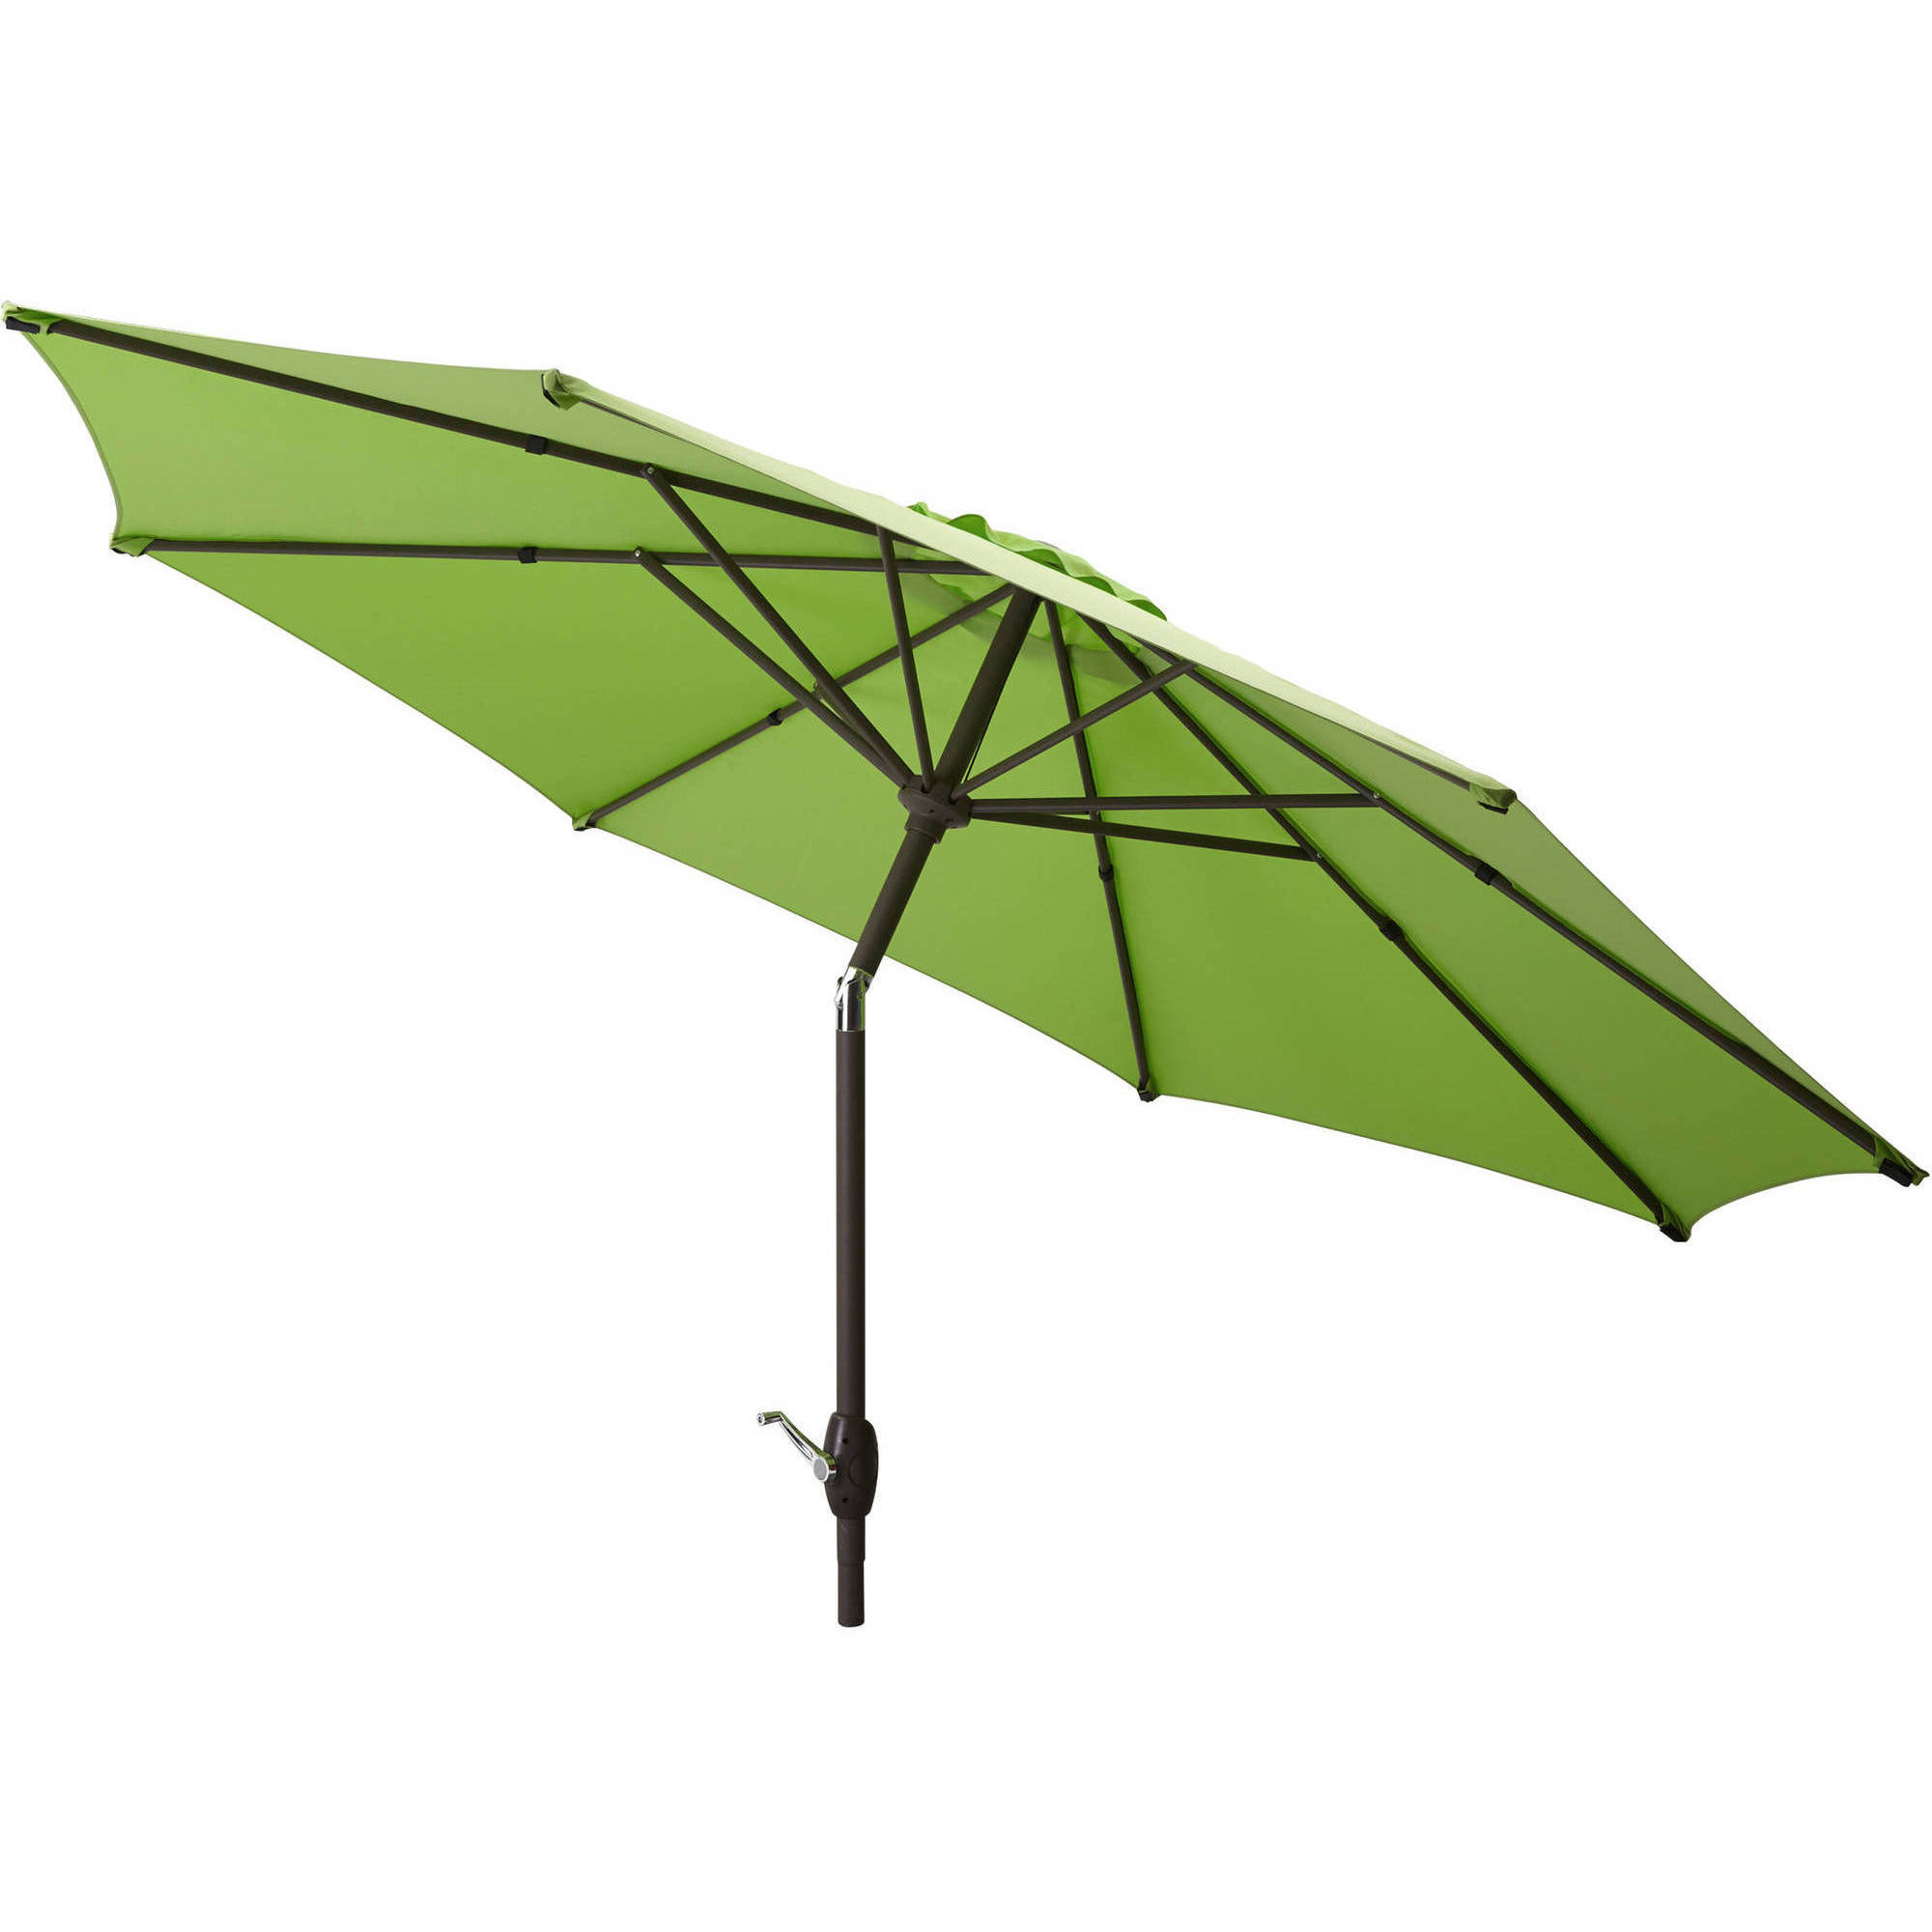 Mainstays 9' Market Umbrella